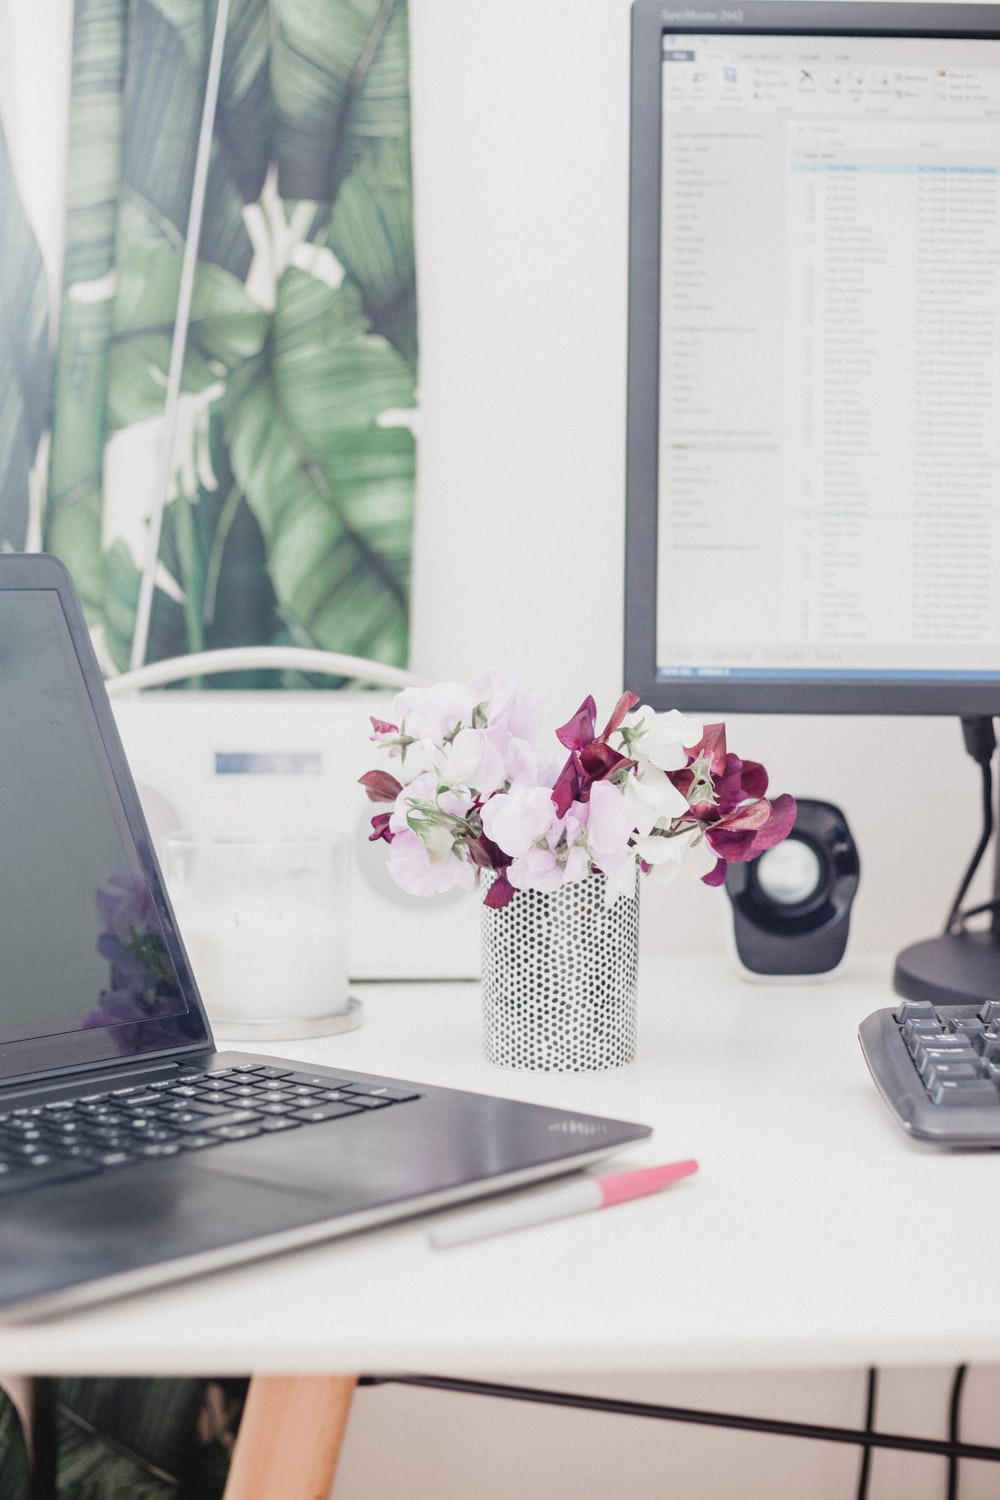 pink and red petaled flower on vase beside computers